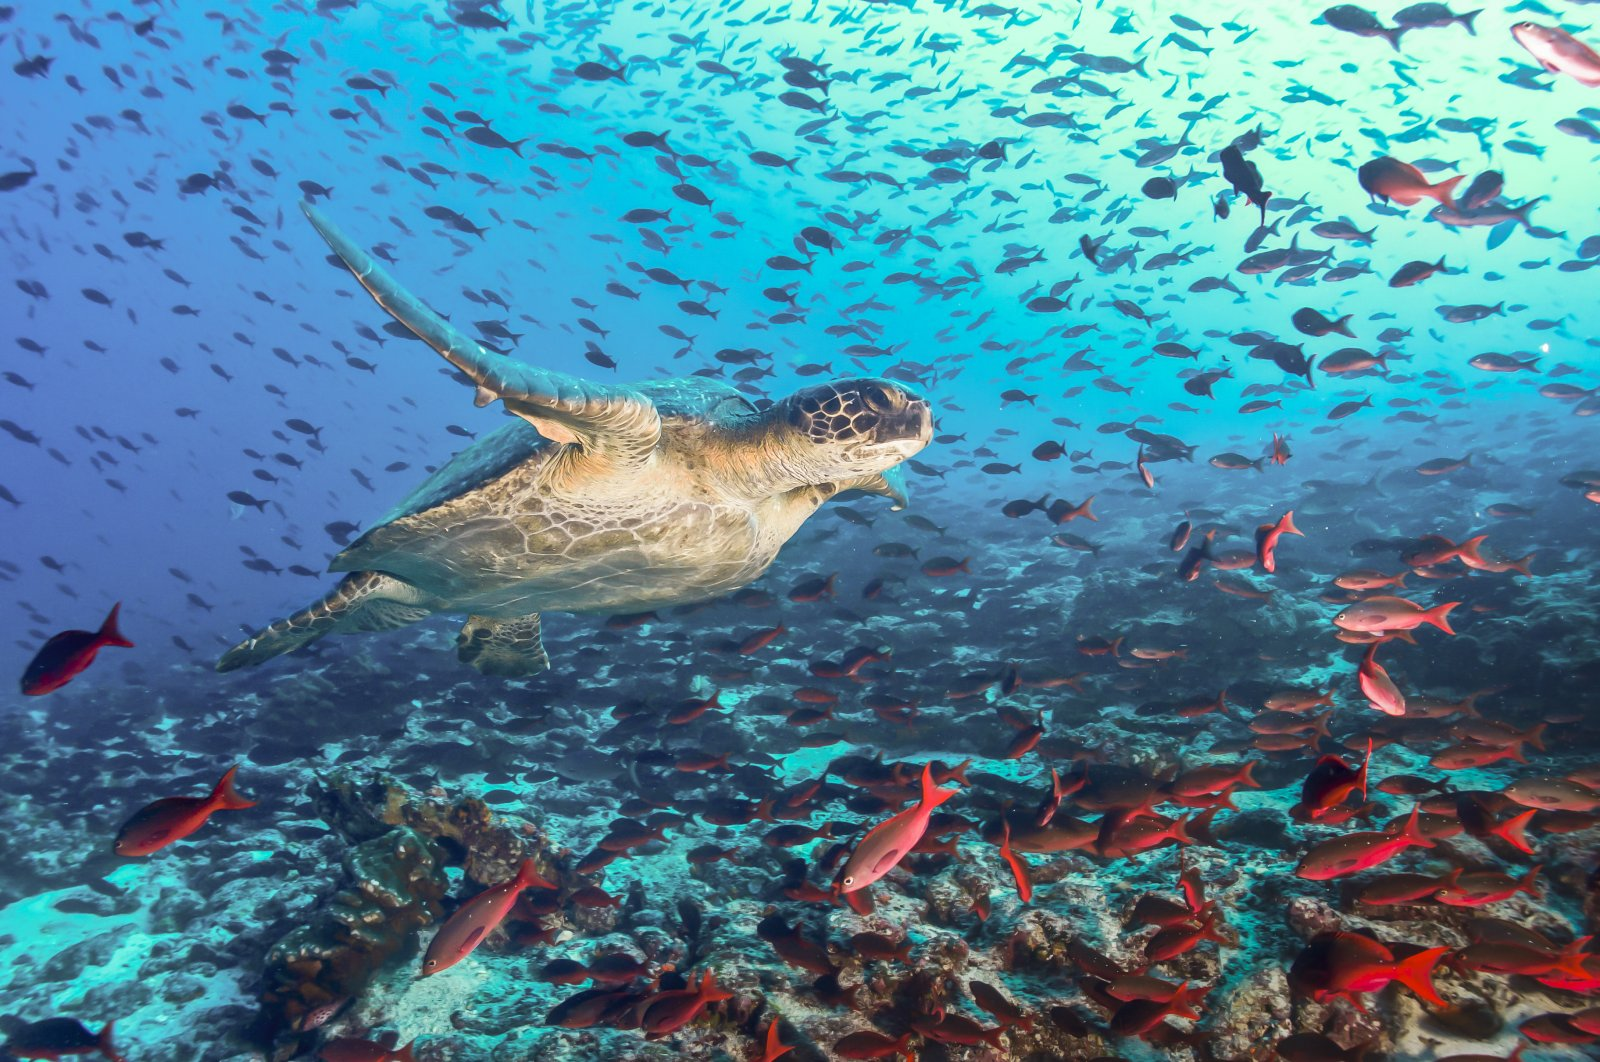 Did you know that the majority of life on Earth is aquatic?